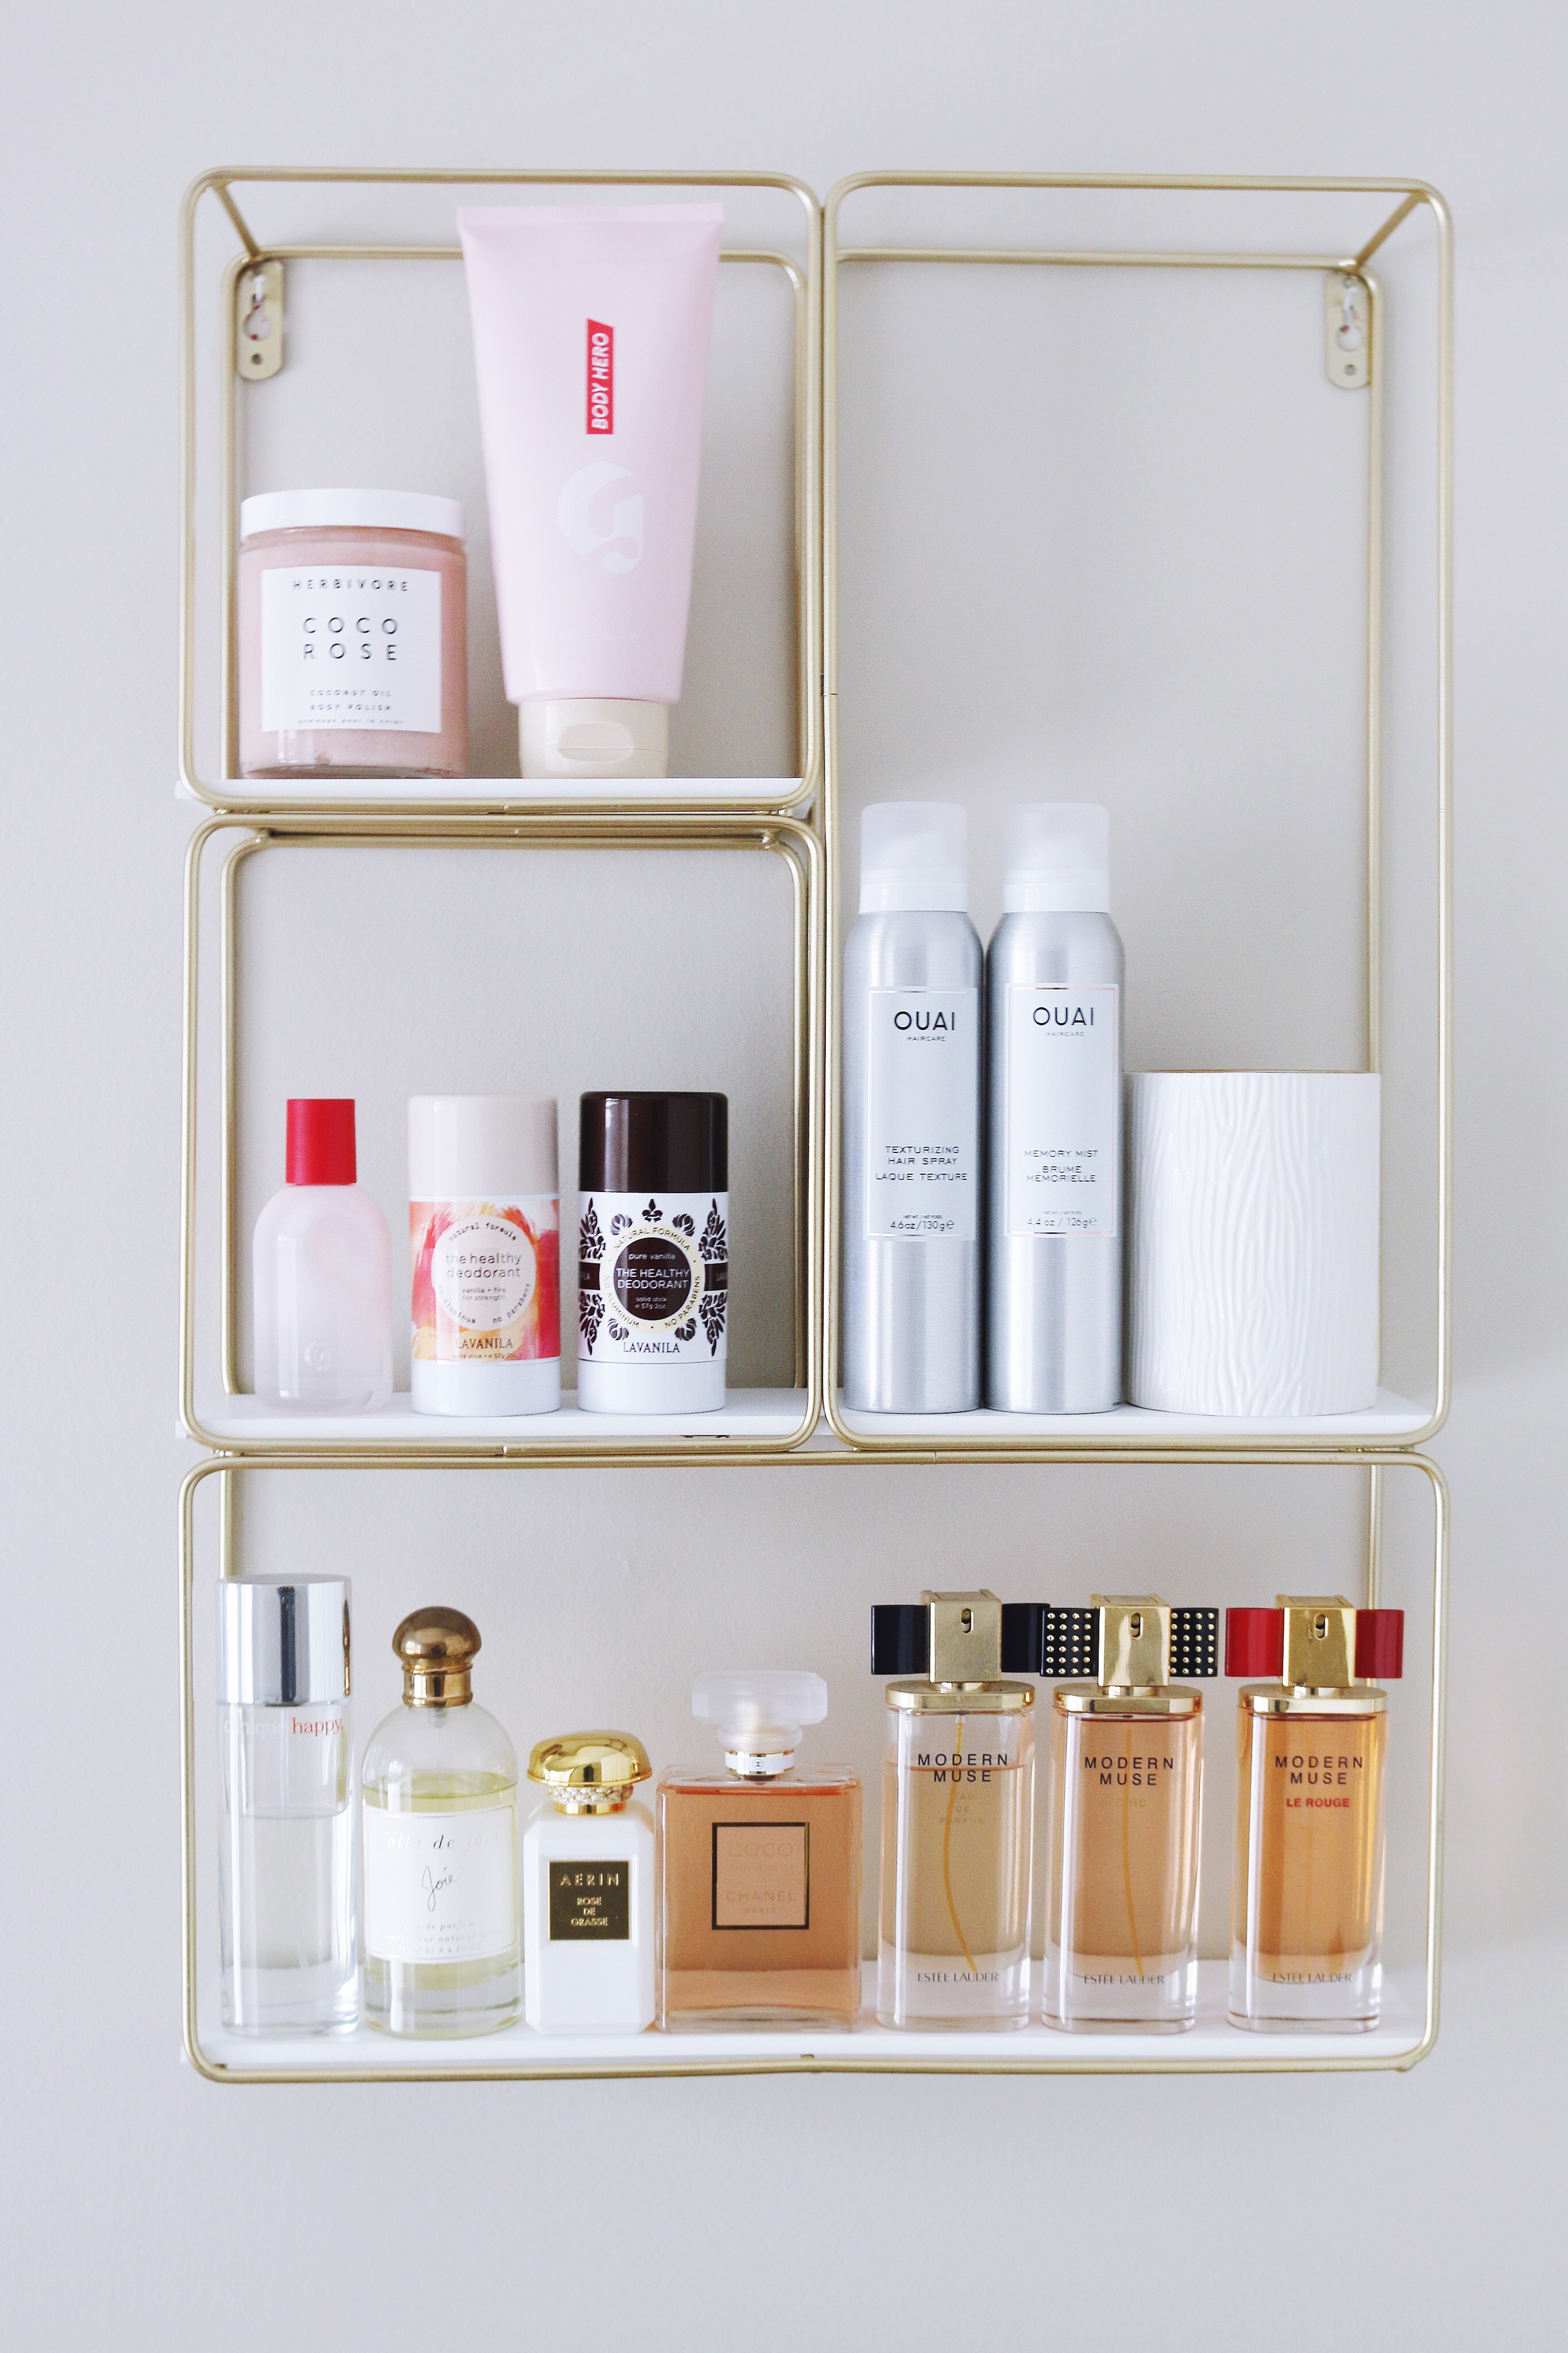 The best smelling beauty products: from traditional fragrances to body care.